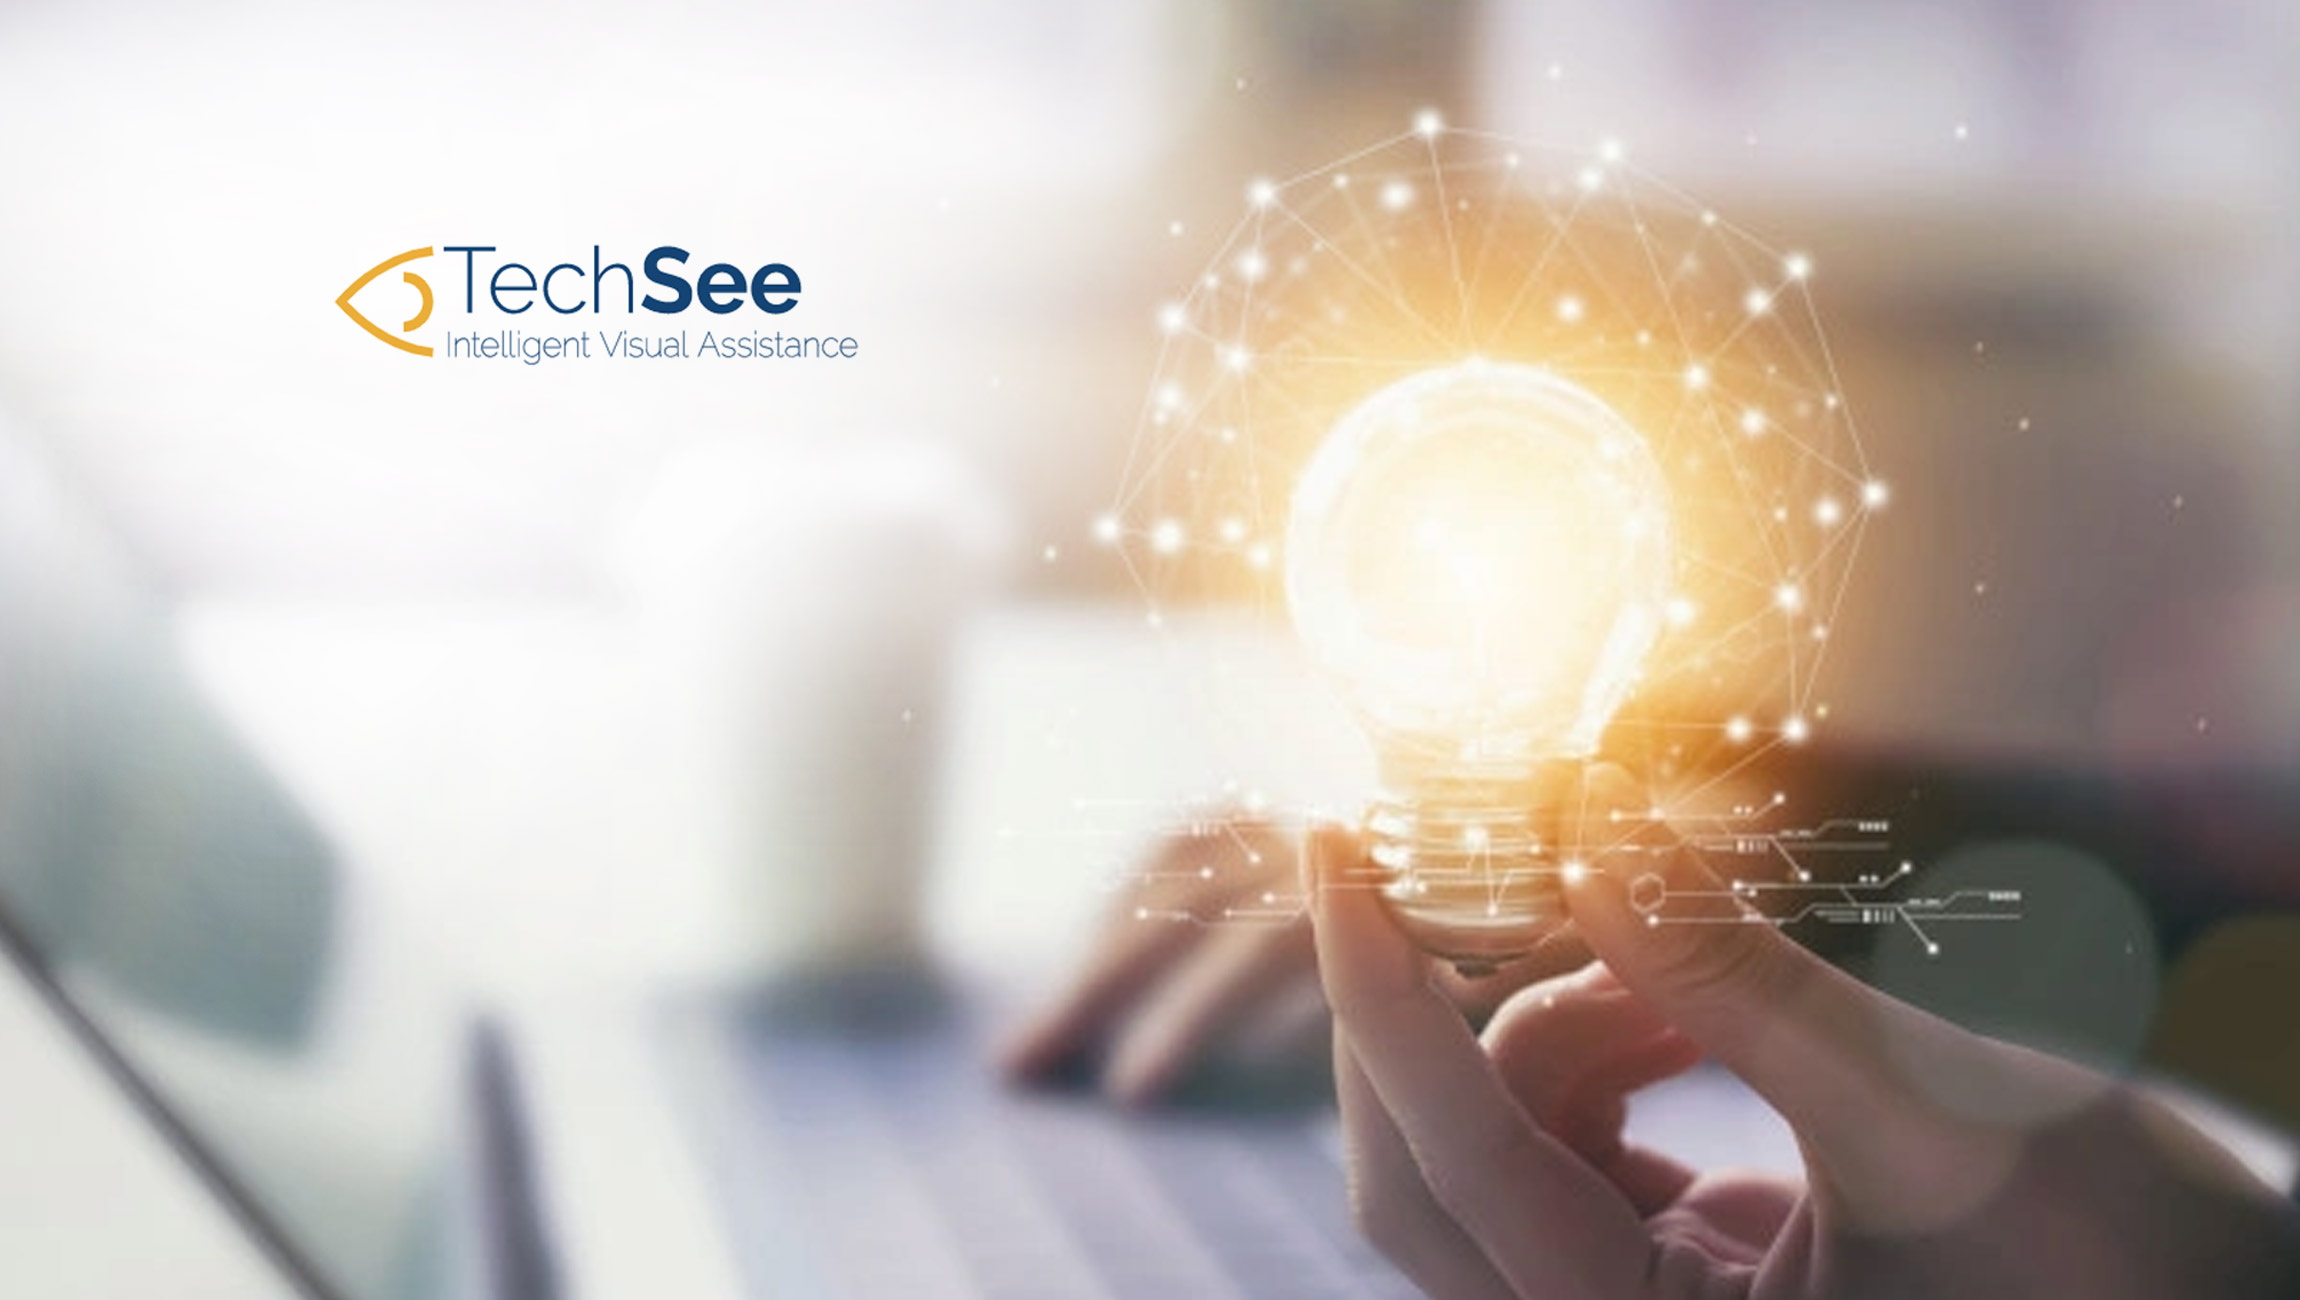 TechSee Launches First Scalable AR Assistant Platform Powered by Computer Vision AI